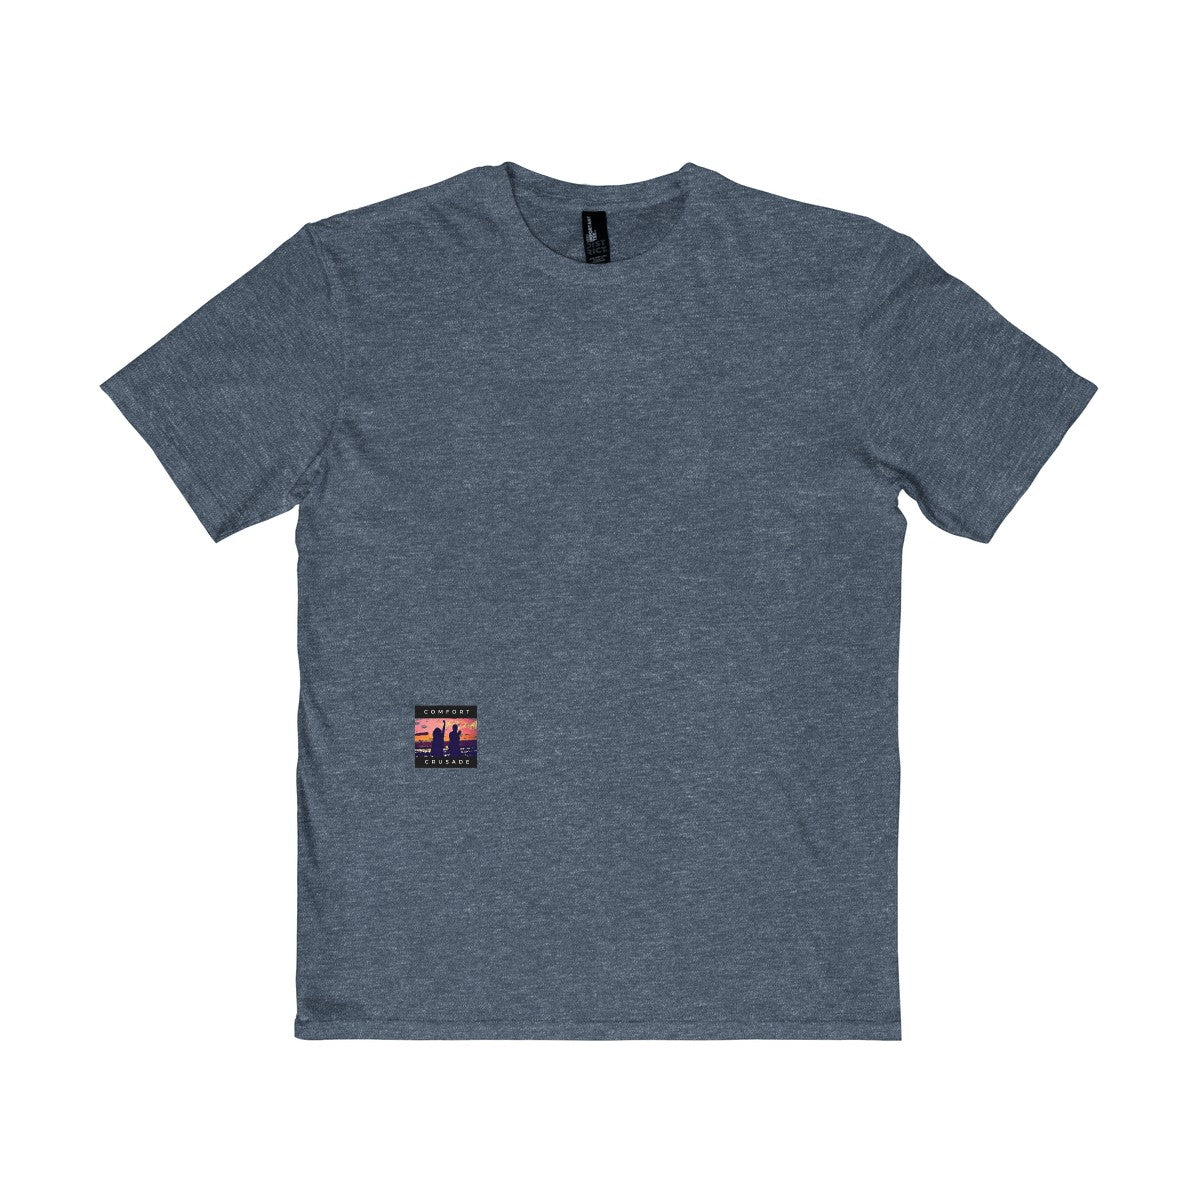 Comfort Crusade Men's Very Important Tee - The Comfort Crusade Shopping Lounge